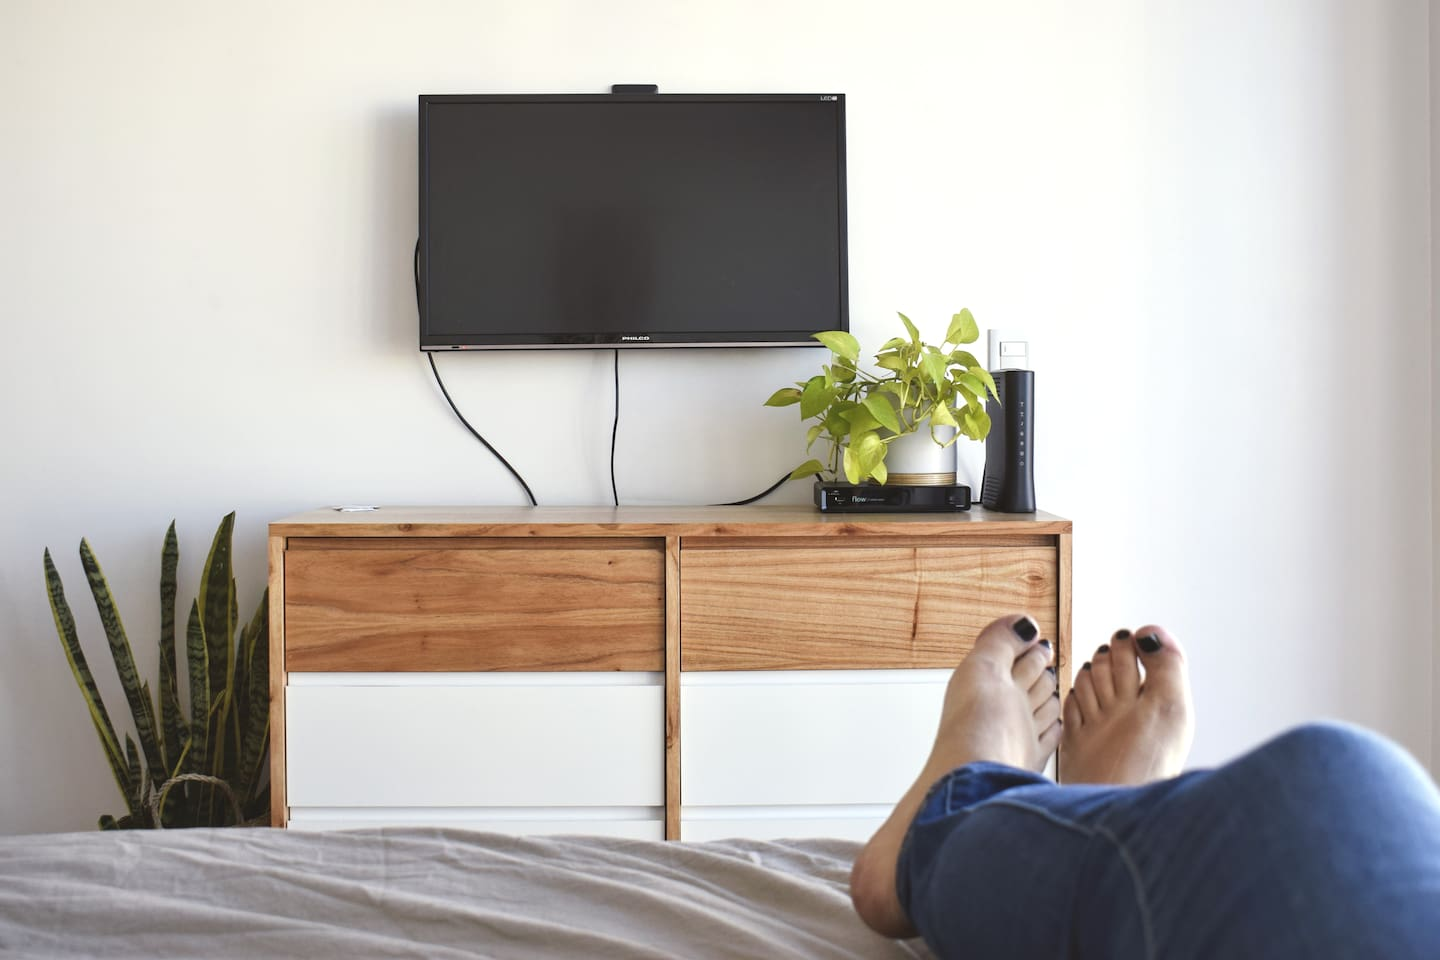 Flat screen TV with cable and Netflix